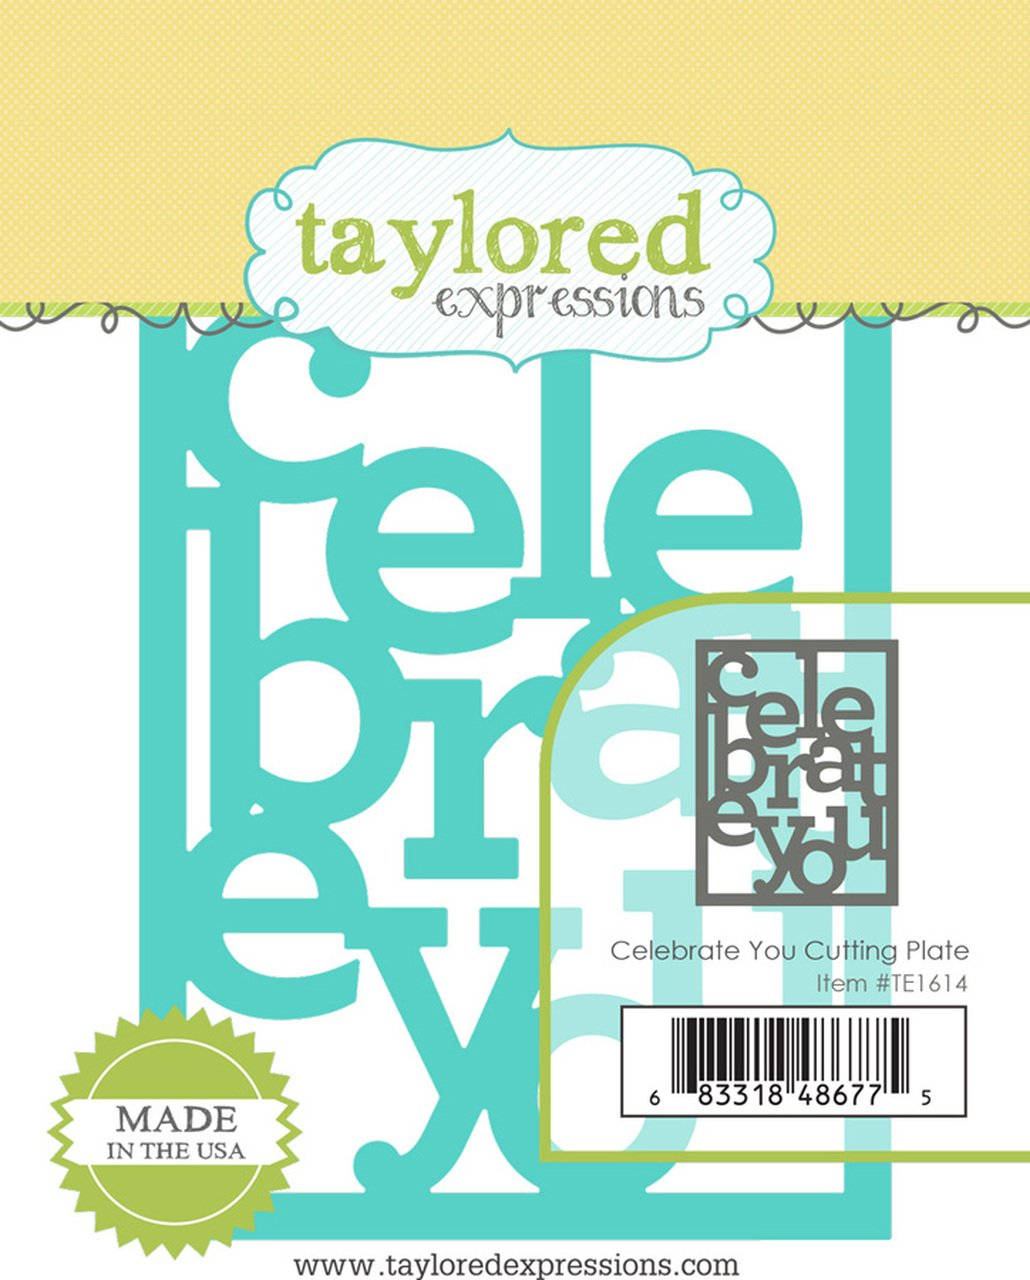 Taylored Expressions - Celebrate You Cutting Plate